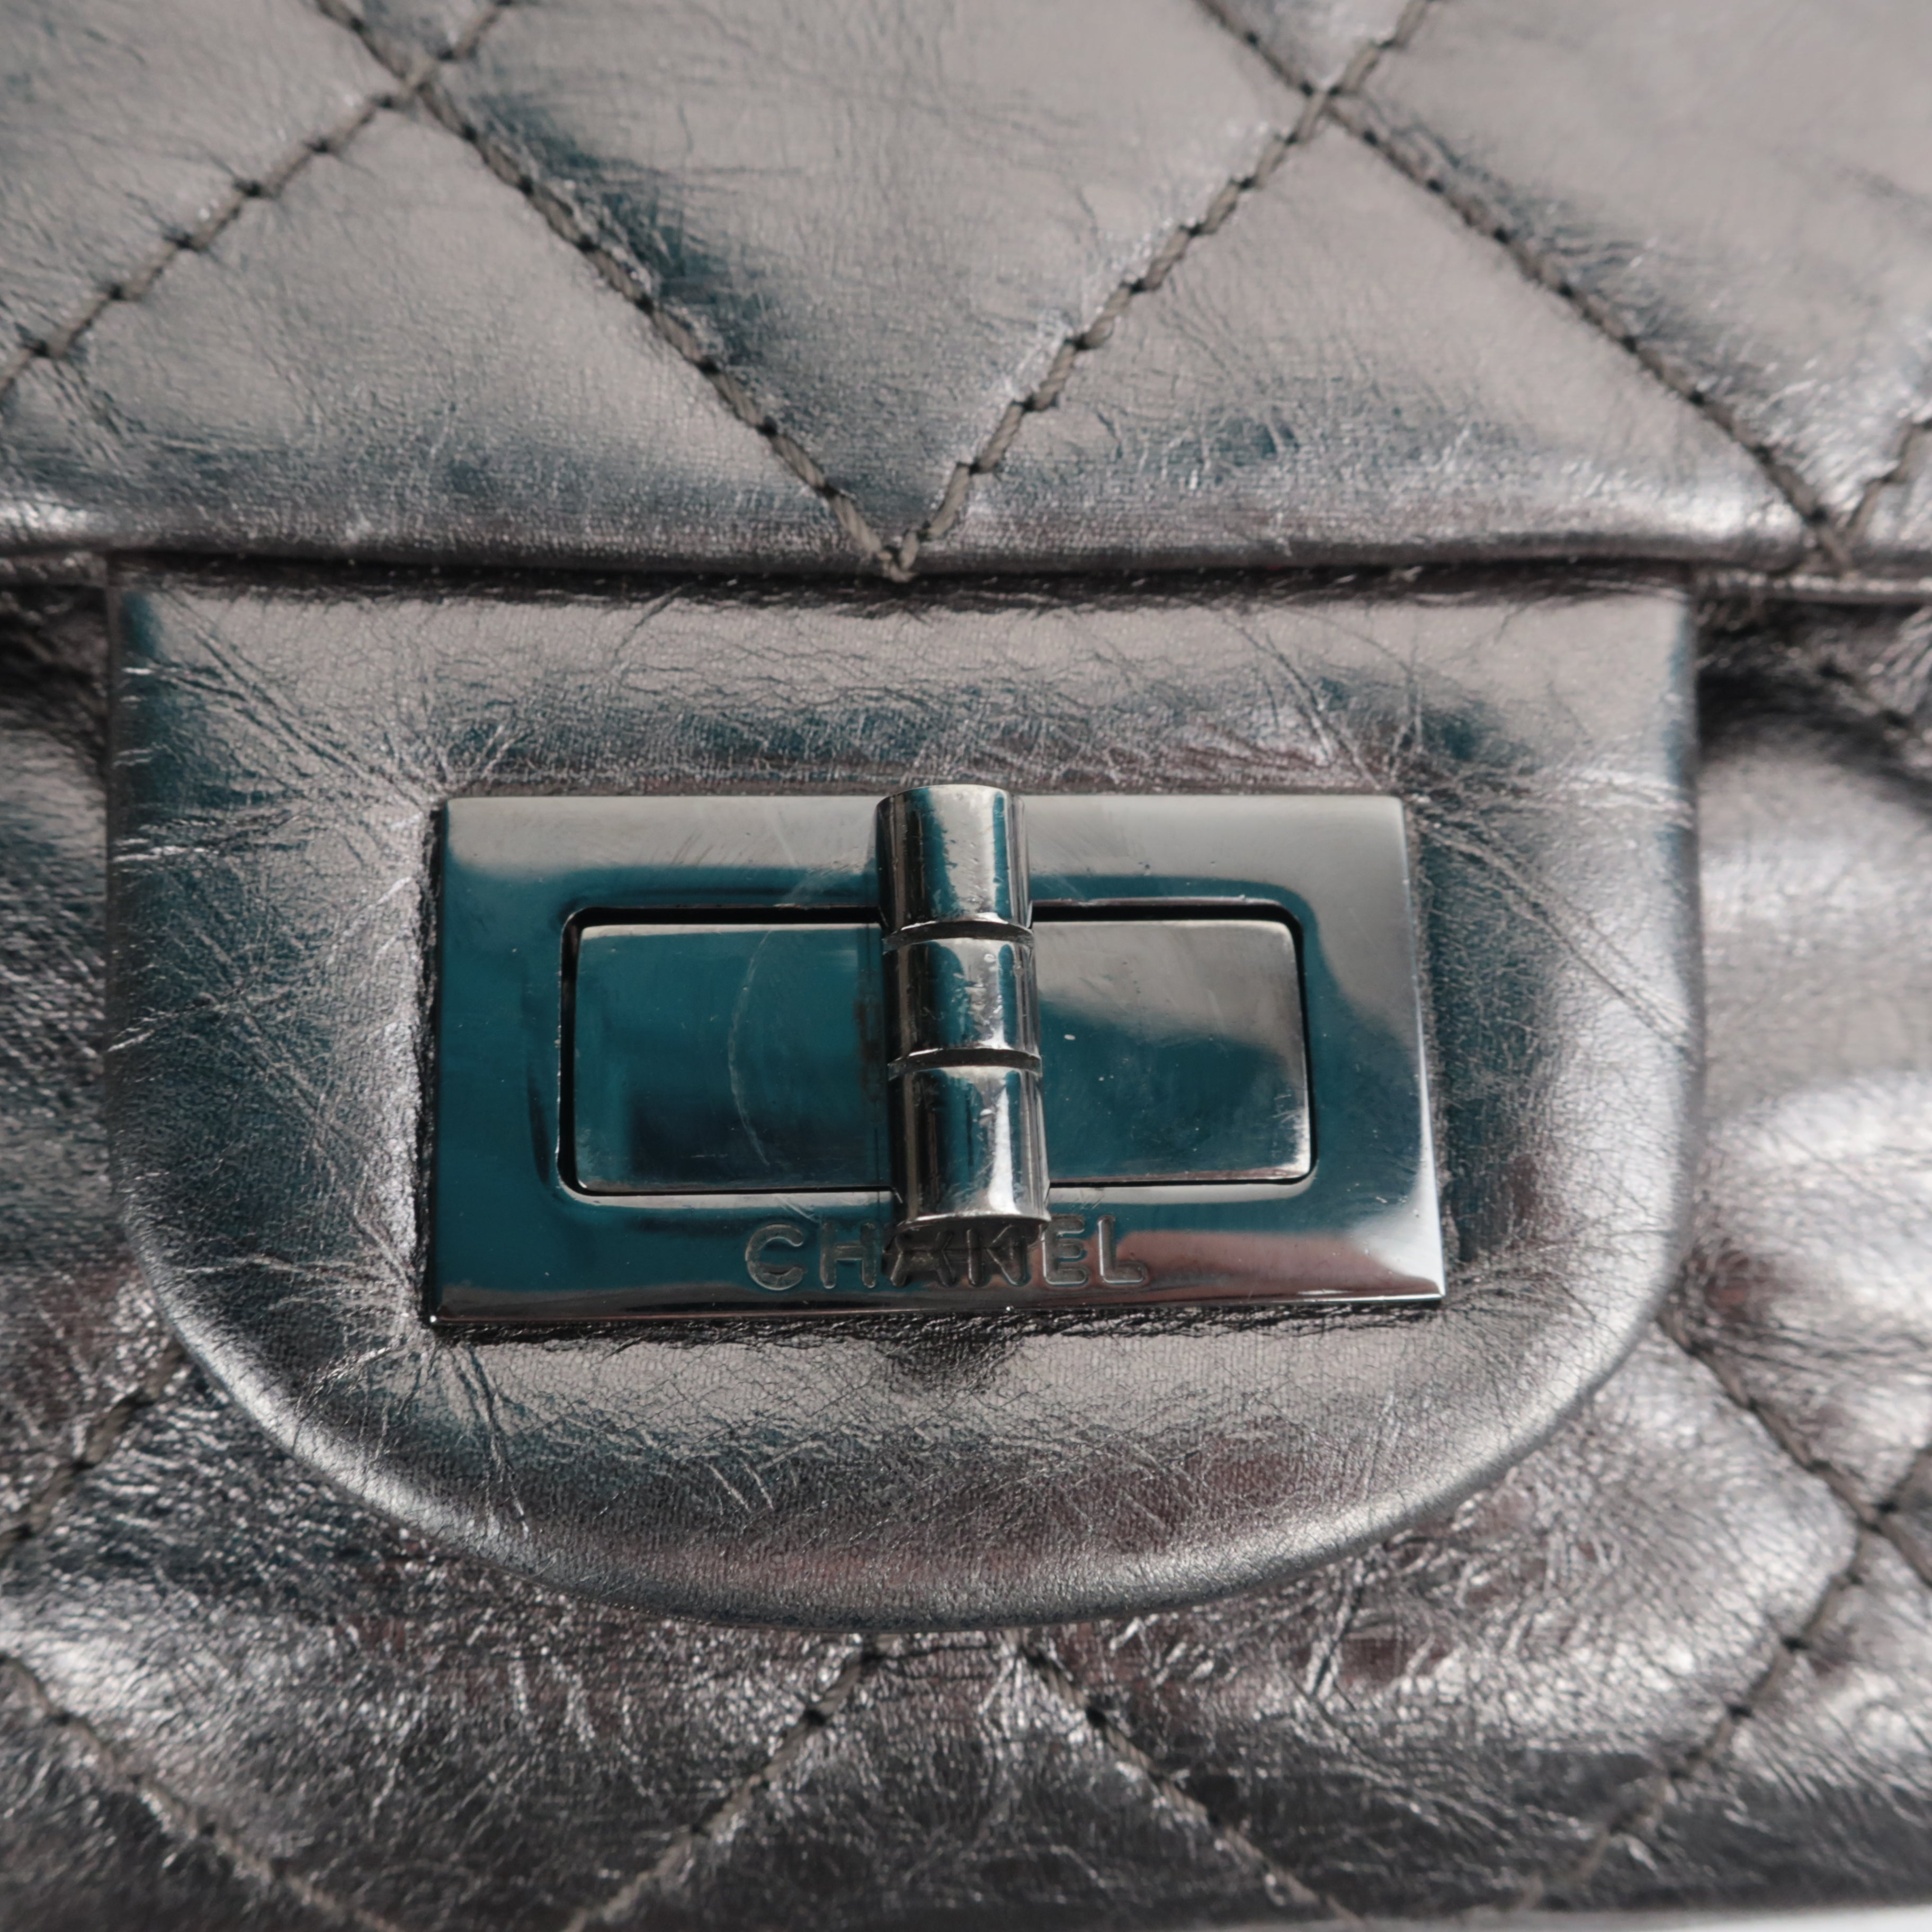 Will Chanel Fix My Bag? Everything You Need to Know About Chanel Repair chanel hardware repair